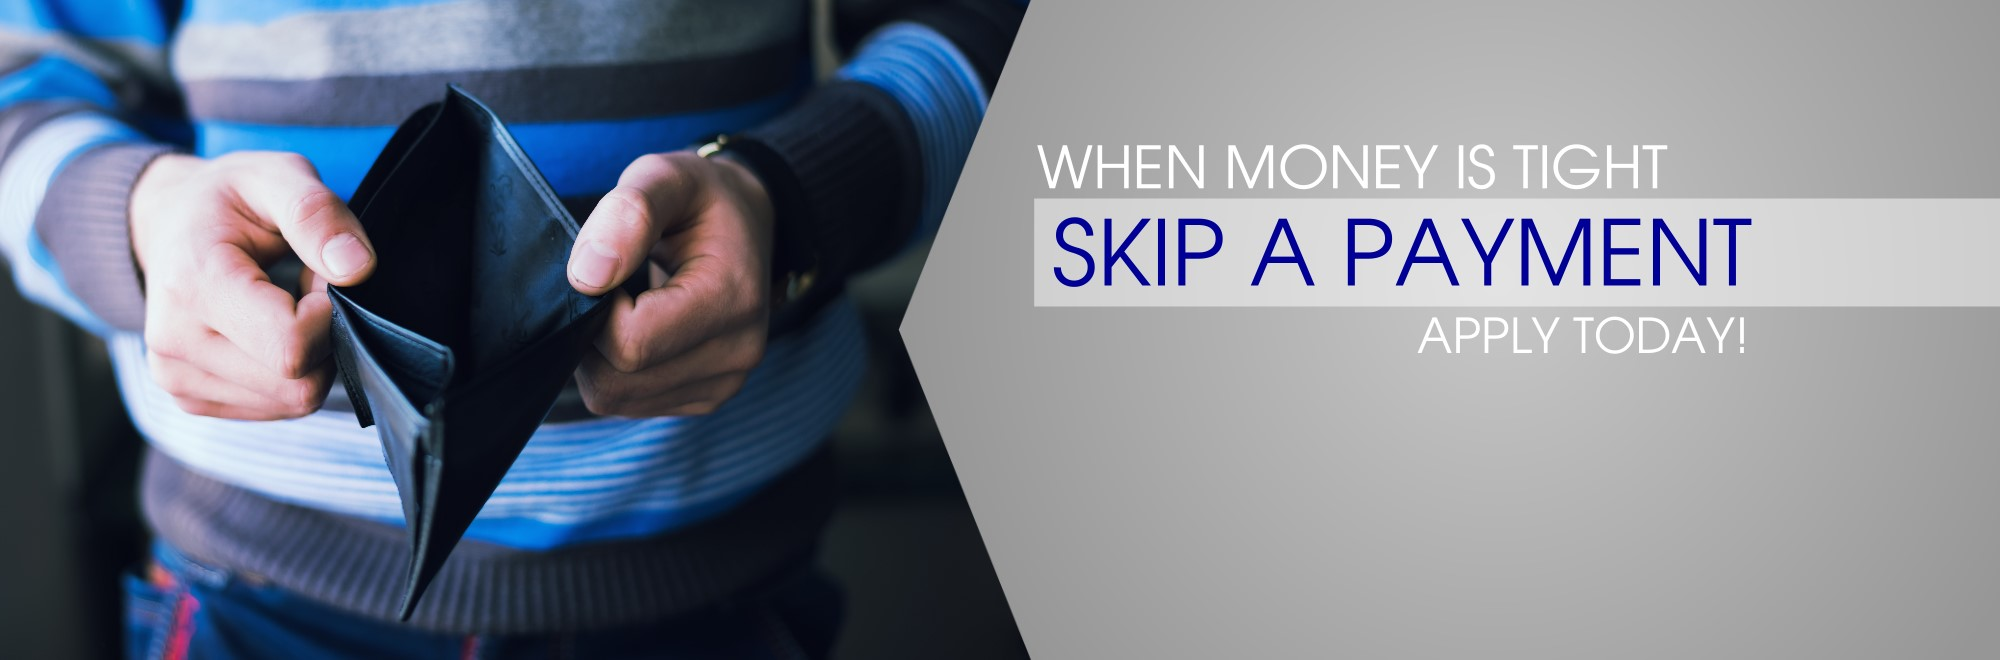 short on cash? skip a pay. apply today.